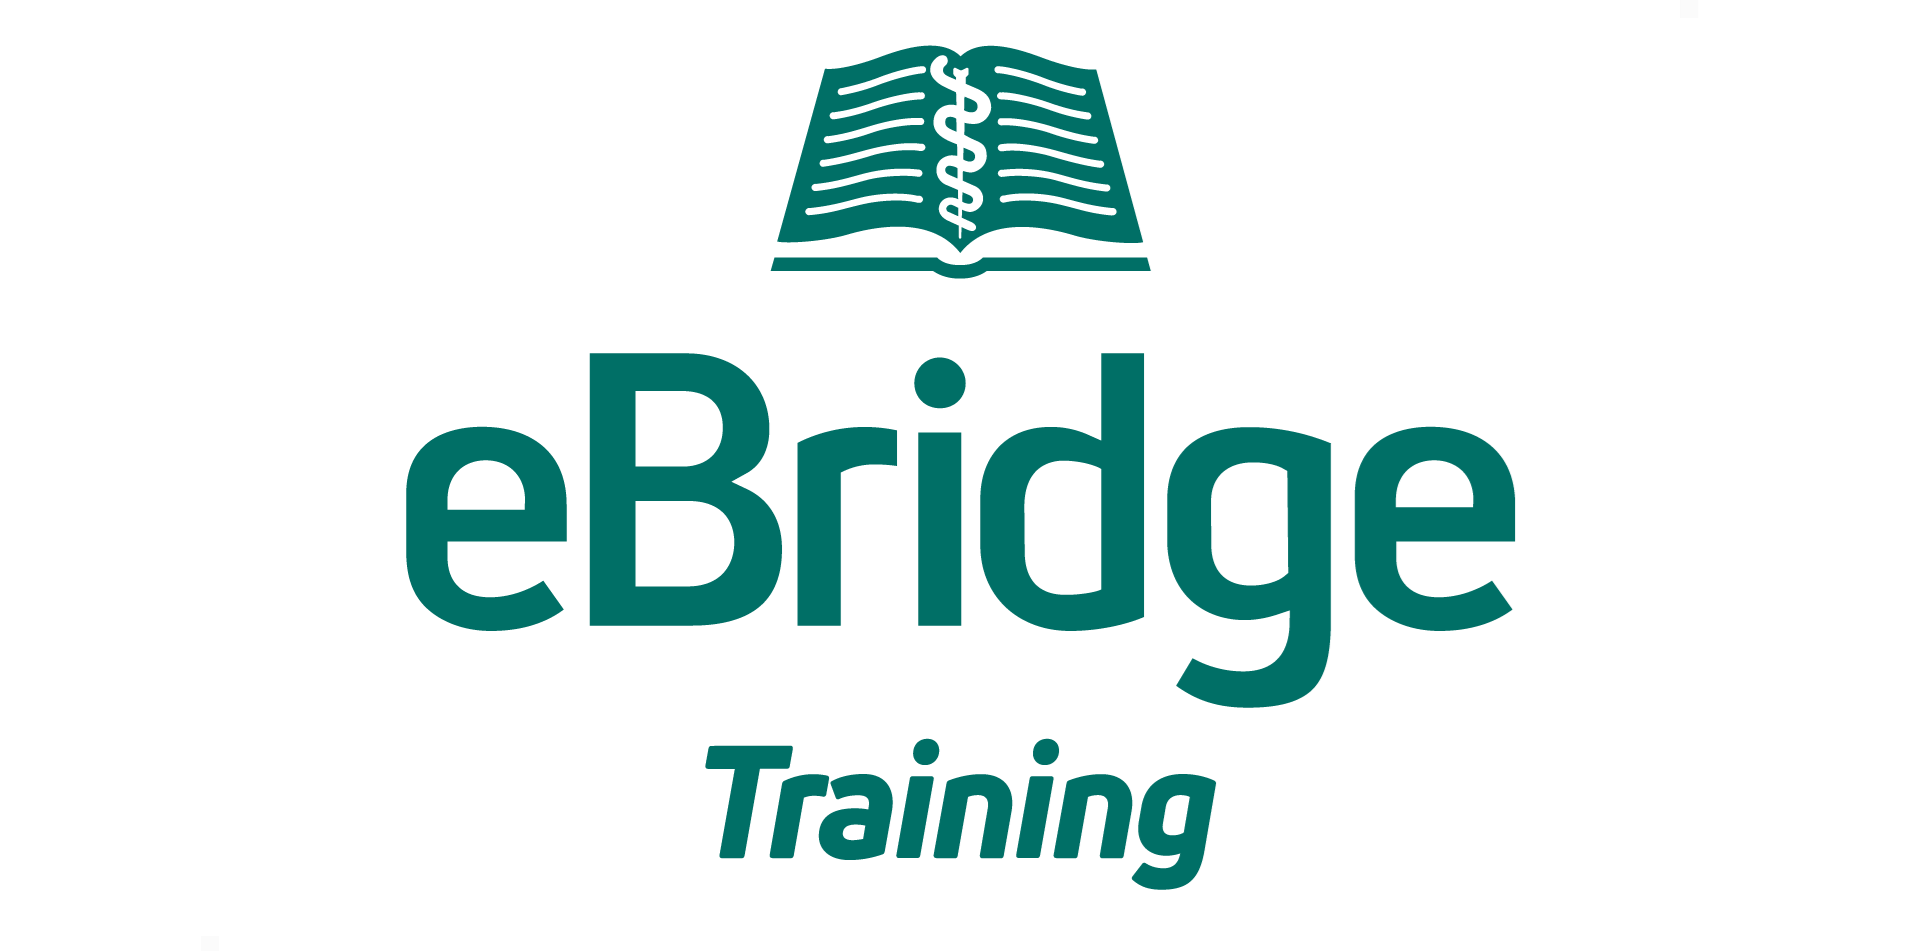 ebridge-training2019